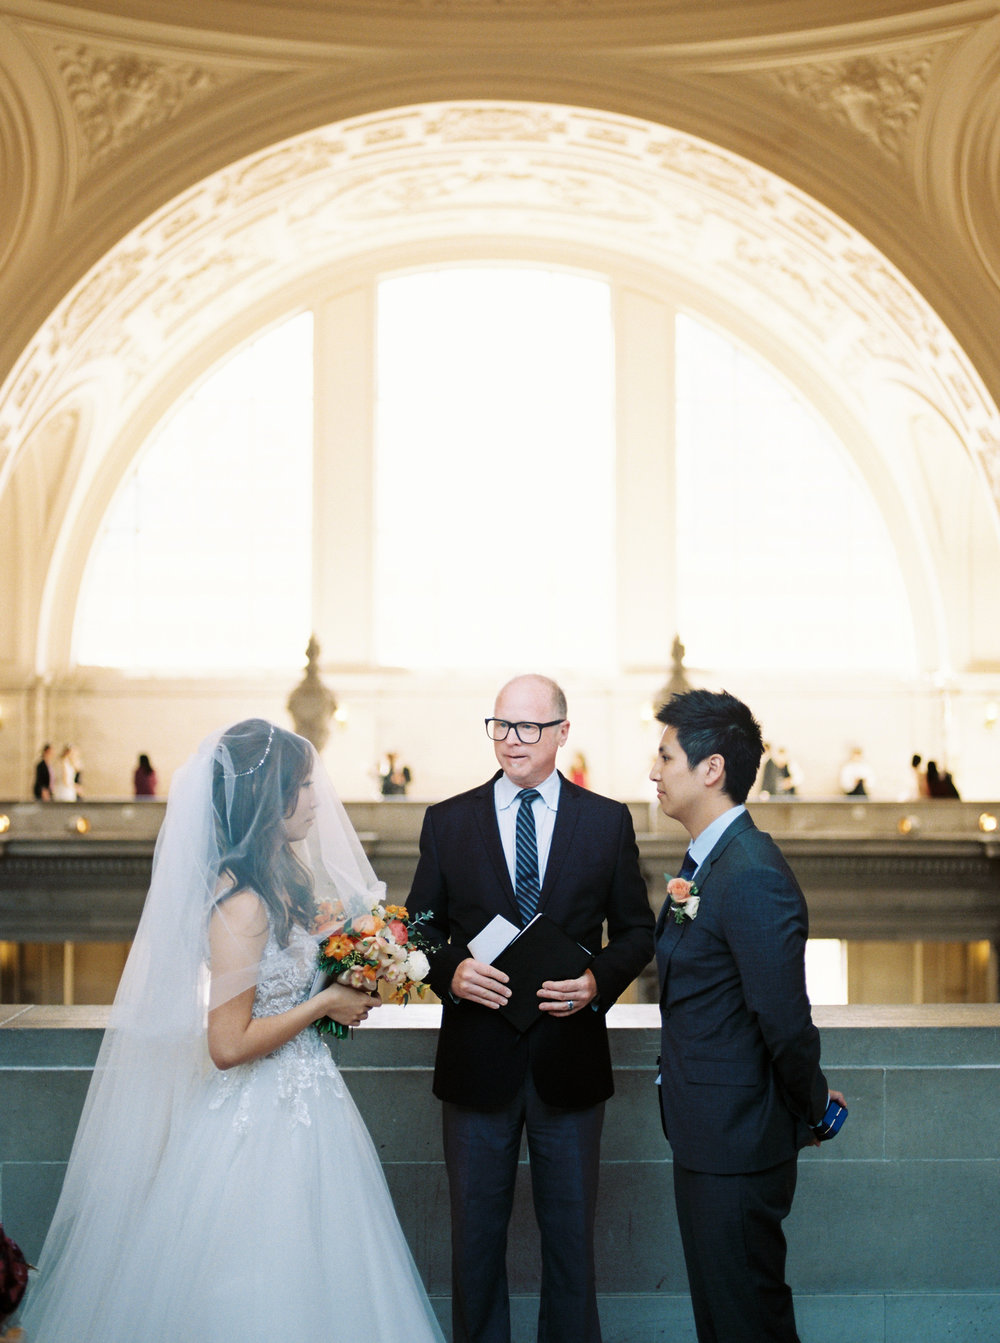 dennisroycoronel_san-francisco-city-hall_wedding-12.jpg